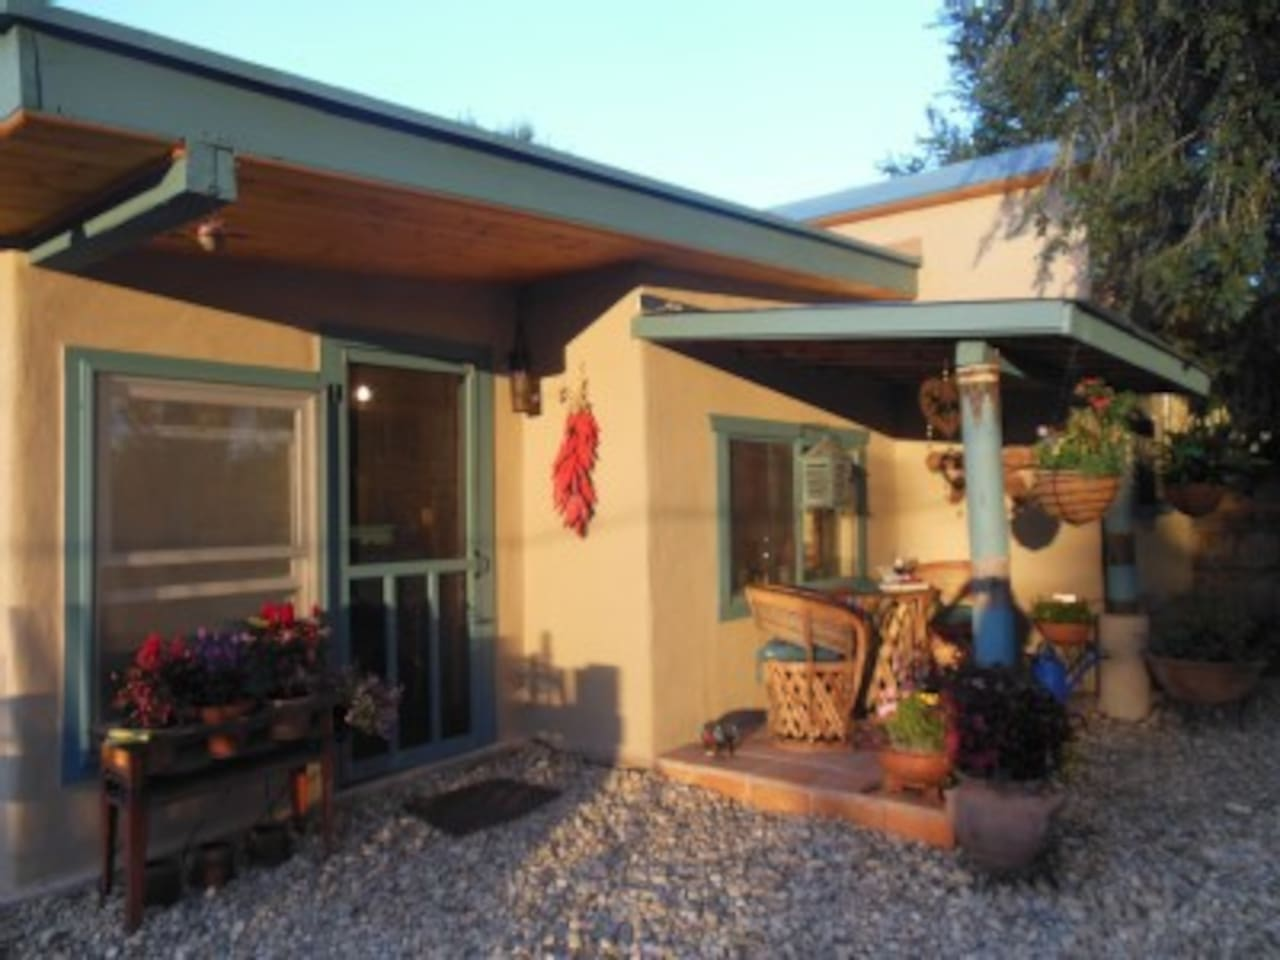 Front view of Casita Juliet at sunset